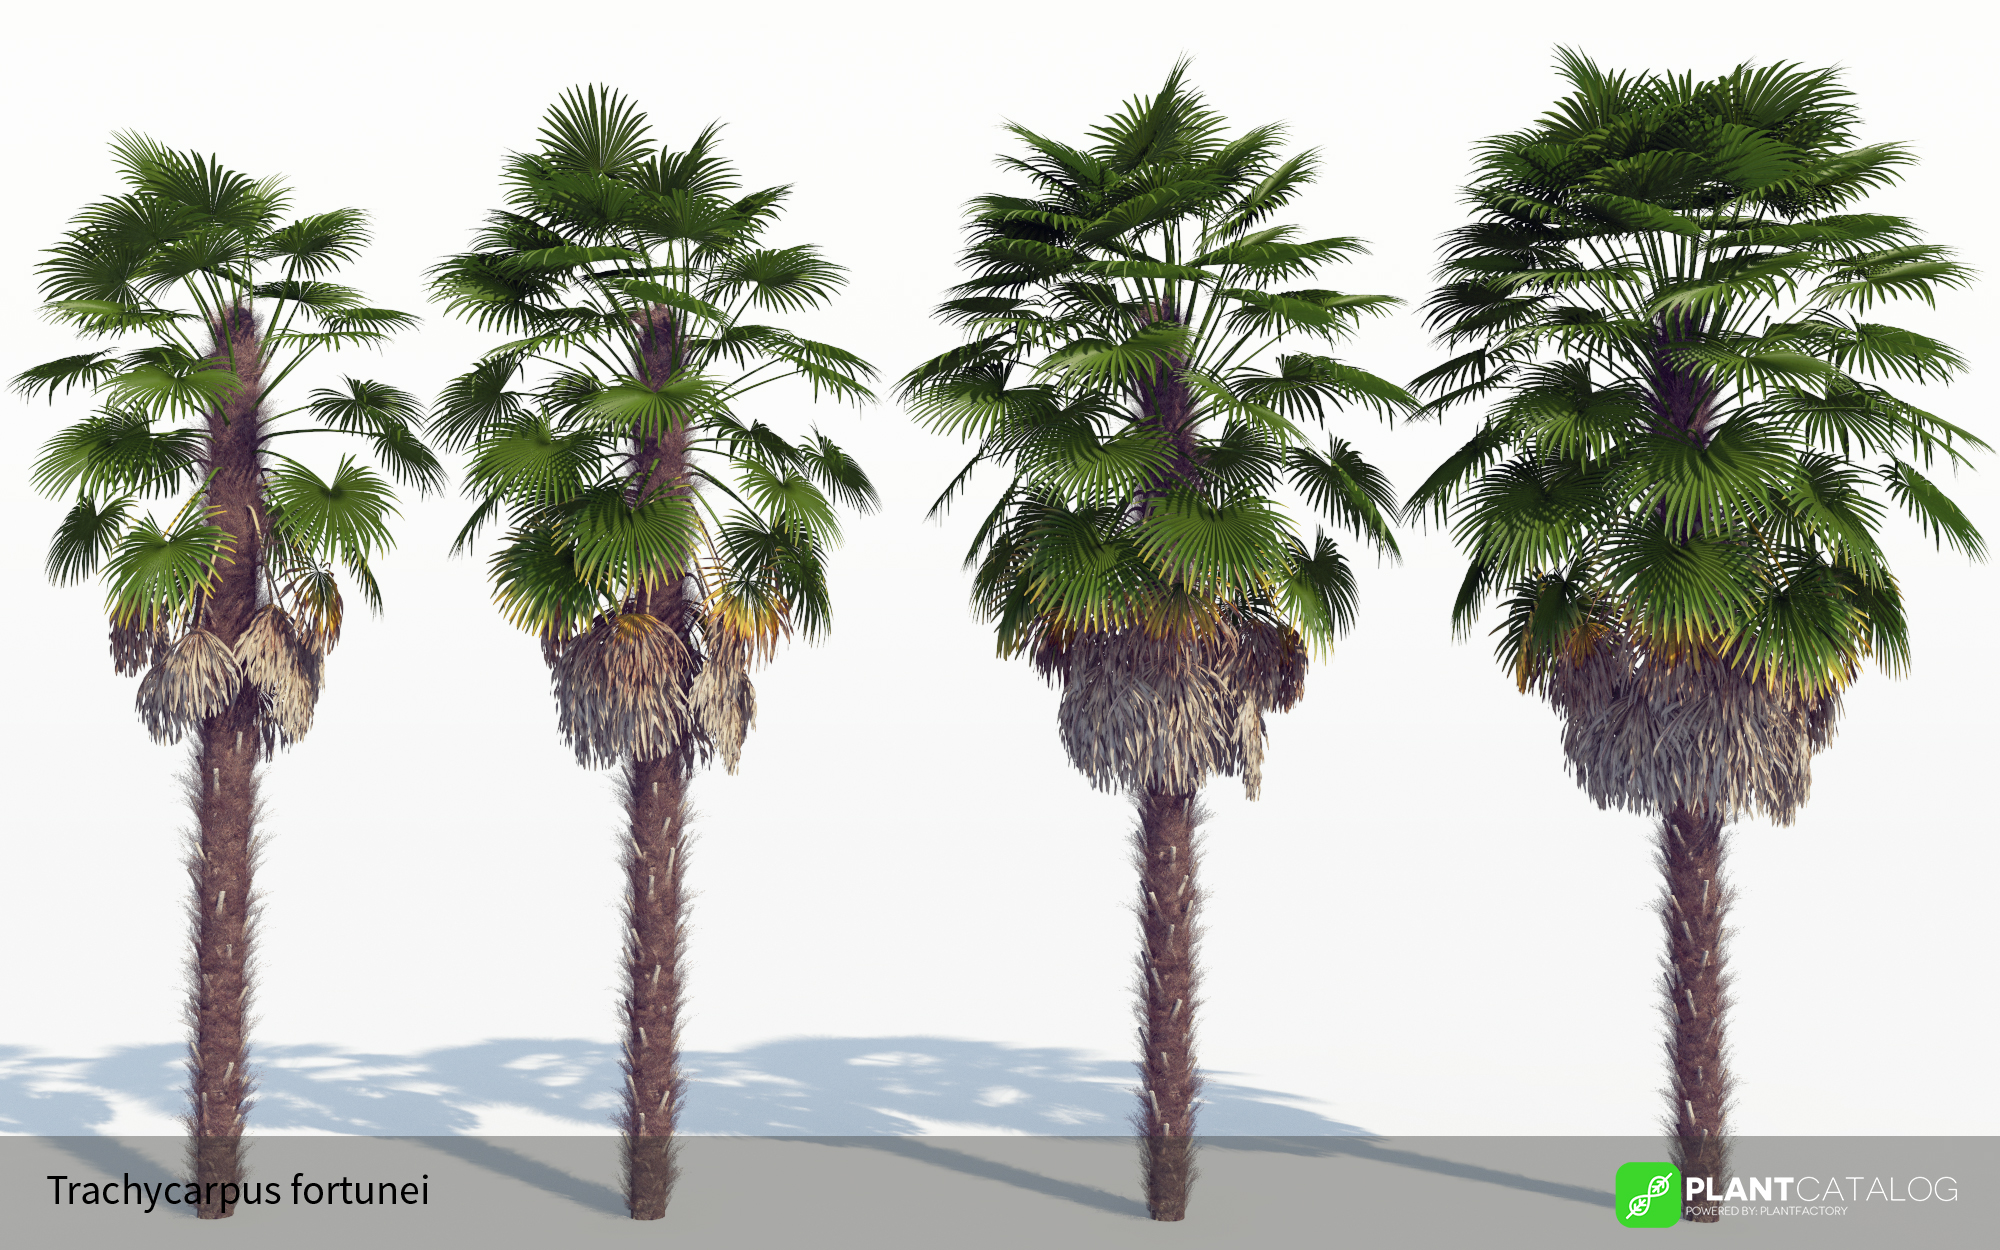 3D model of the Windmill palm - Trachycarpus fortunei - from the PlantCatalog, rendered in VUE